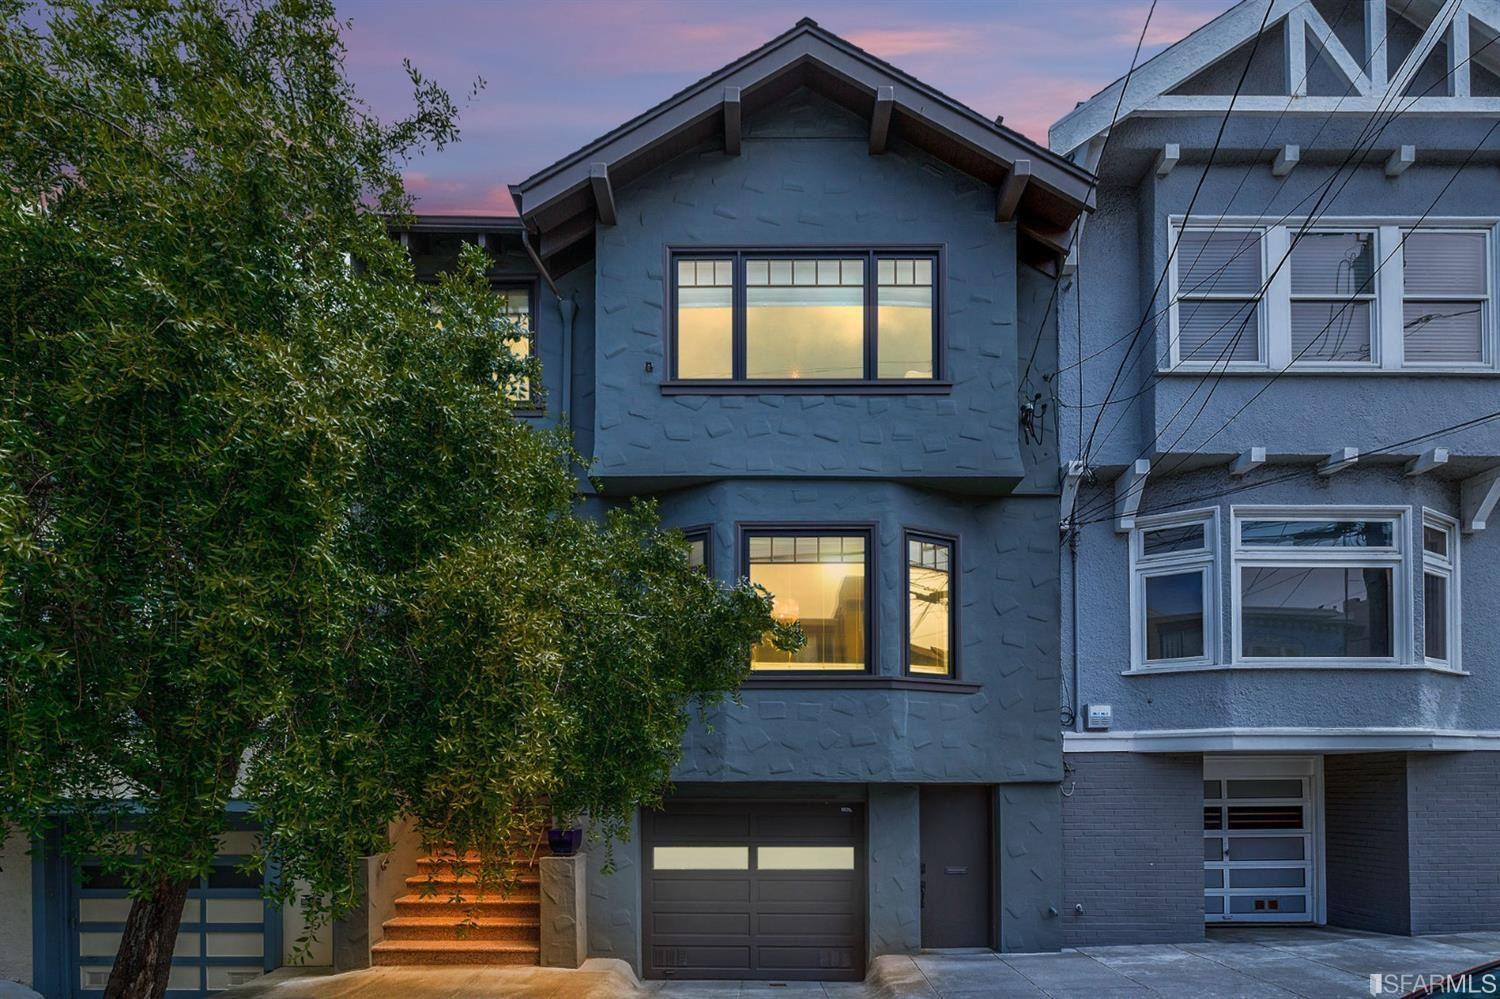 254 20th Avenue, San Francisco, CA 94121 - #: 421543498